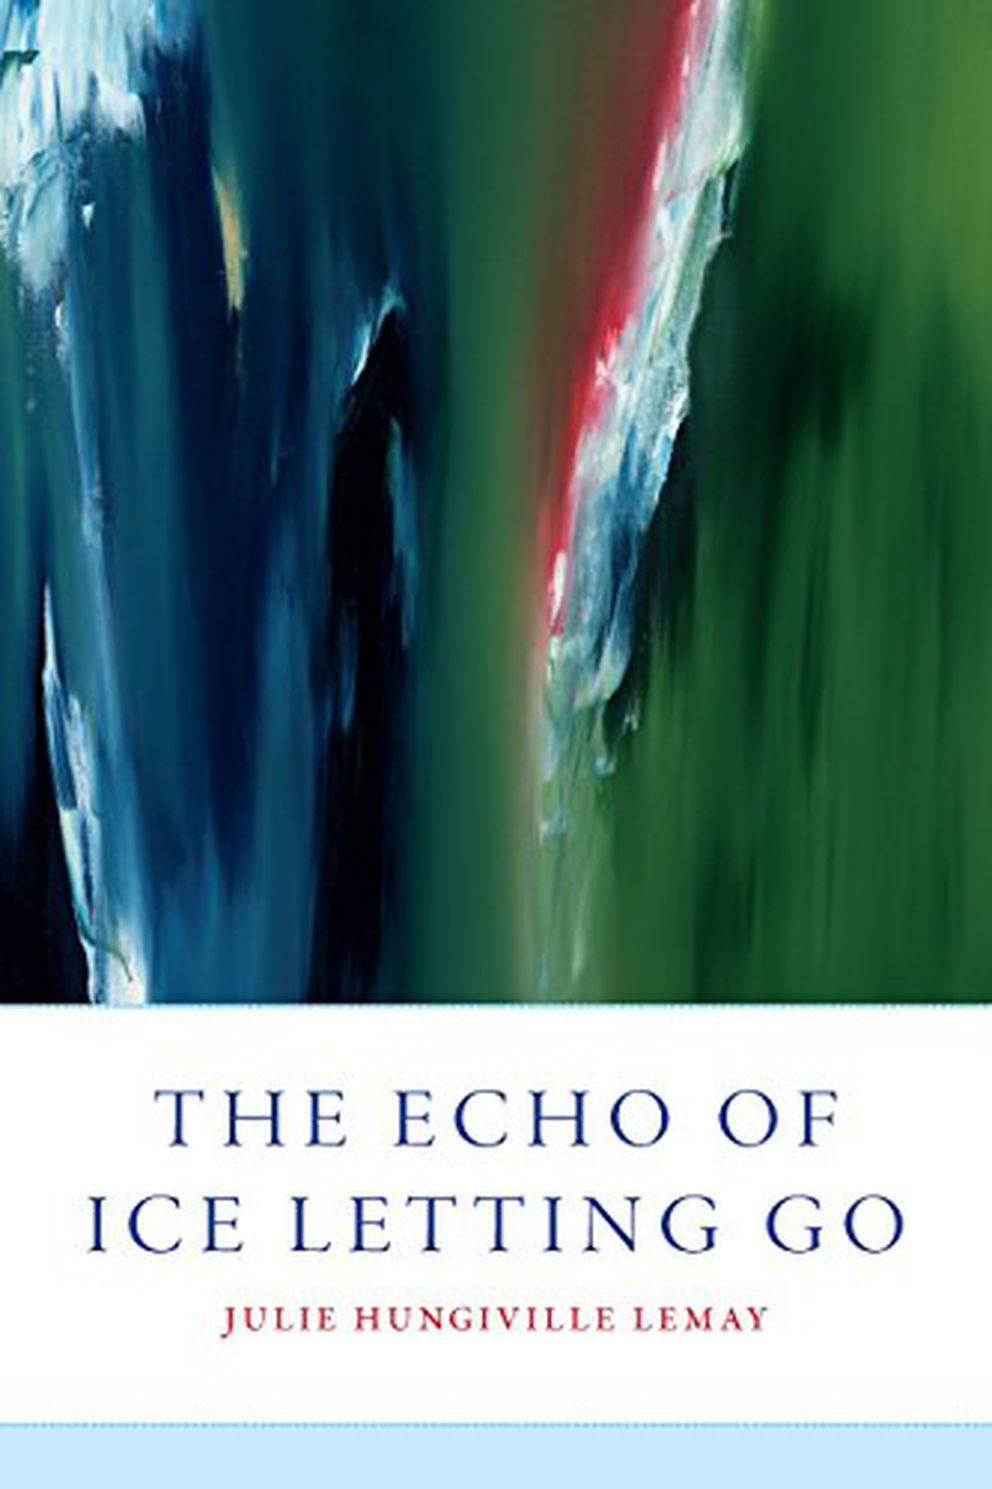 """""""The Echo of Ice Letting Go,"""" by Julie Hungiville LeMay"""